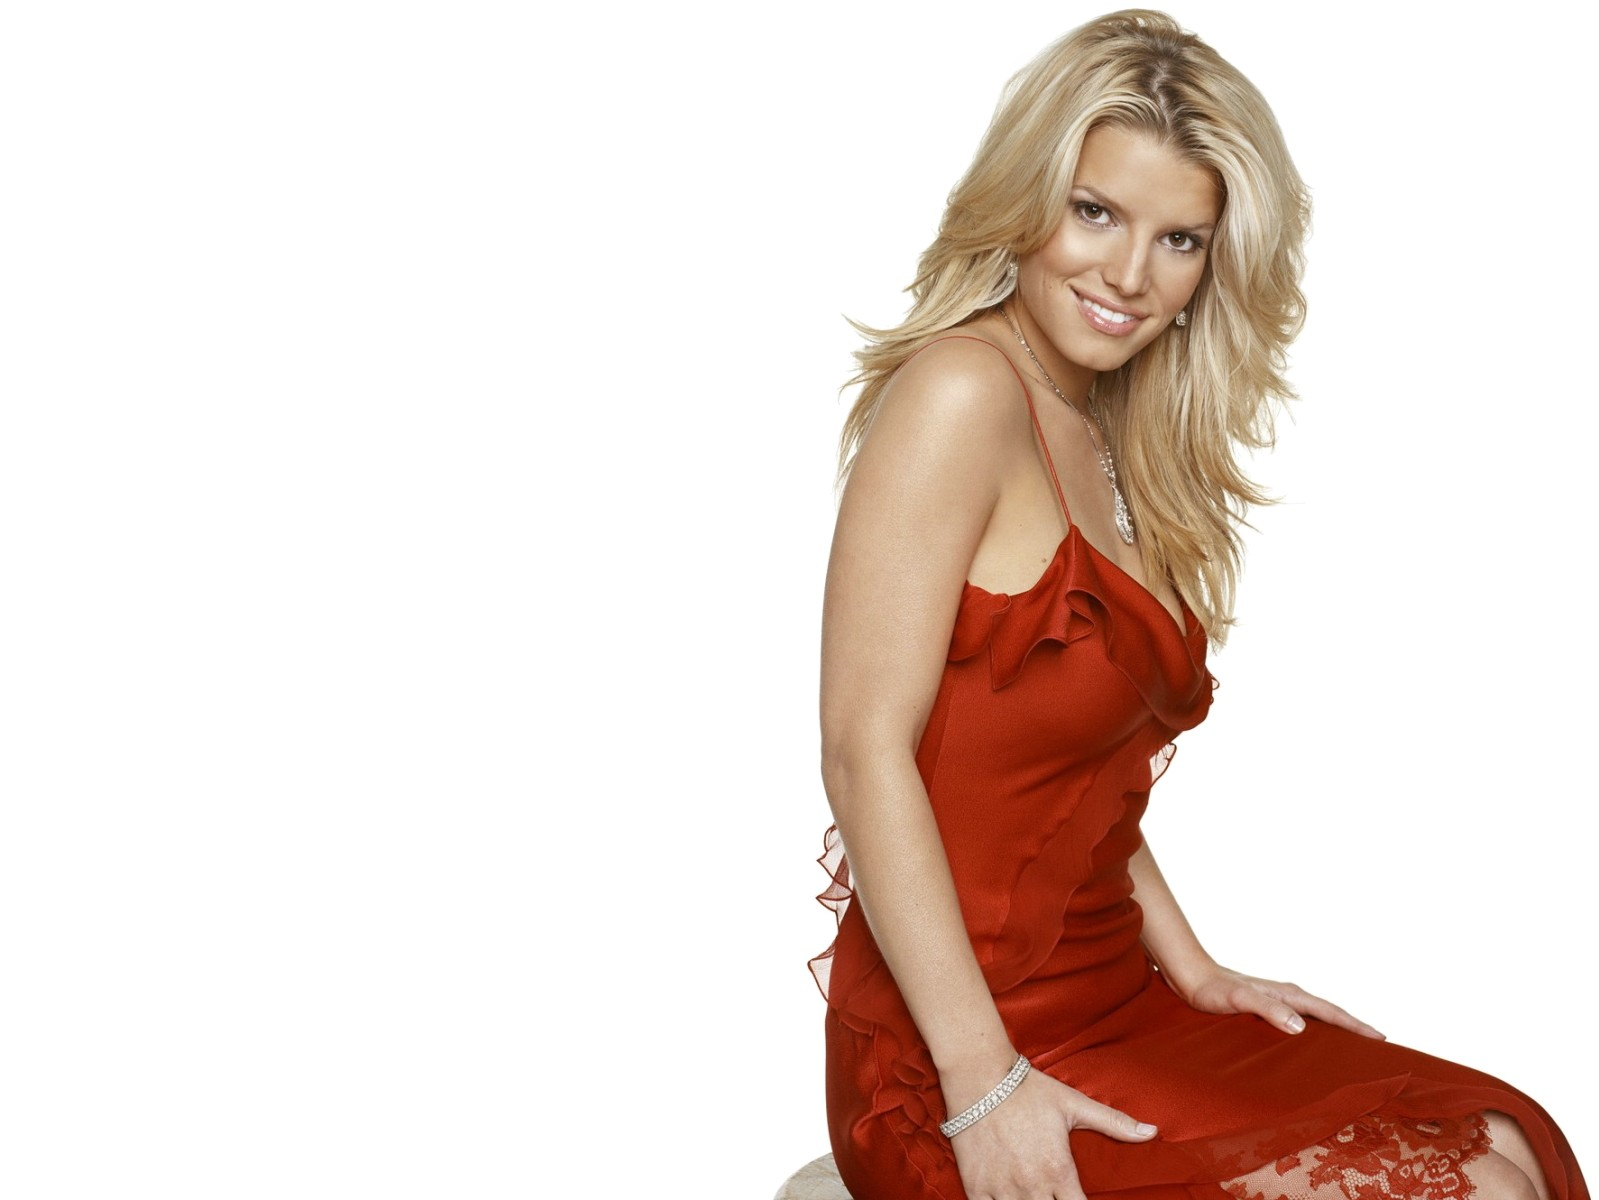 babe jessica simpson wallpapers jessica simpson wallpaper hd 24jpg 1600x1200